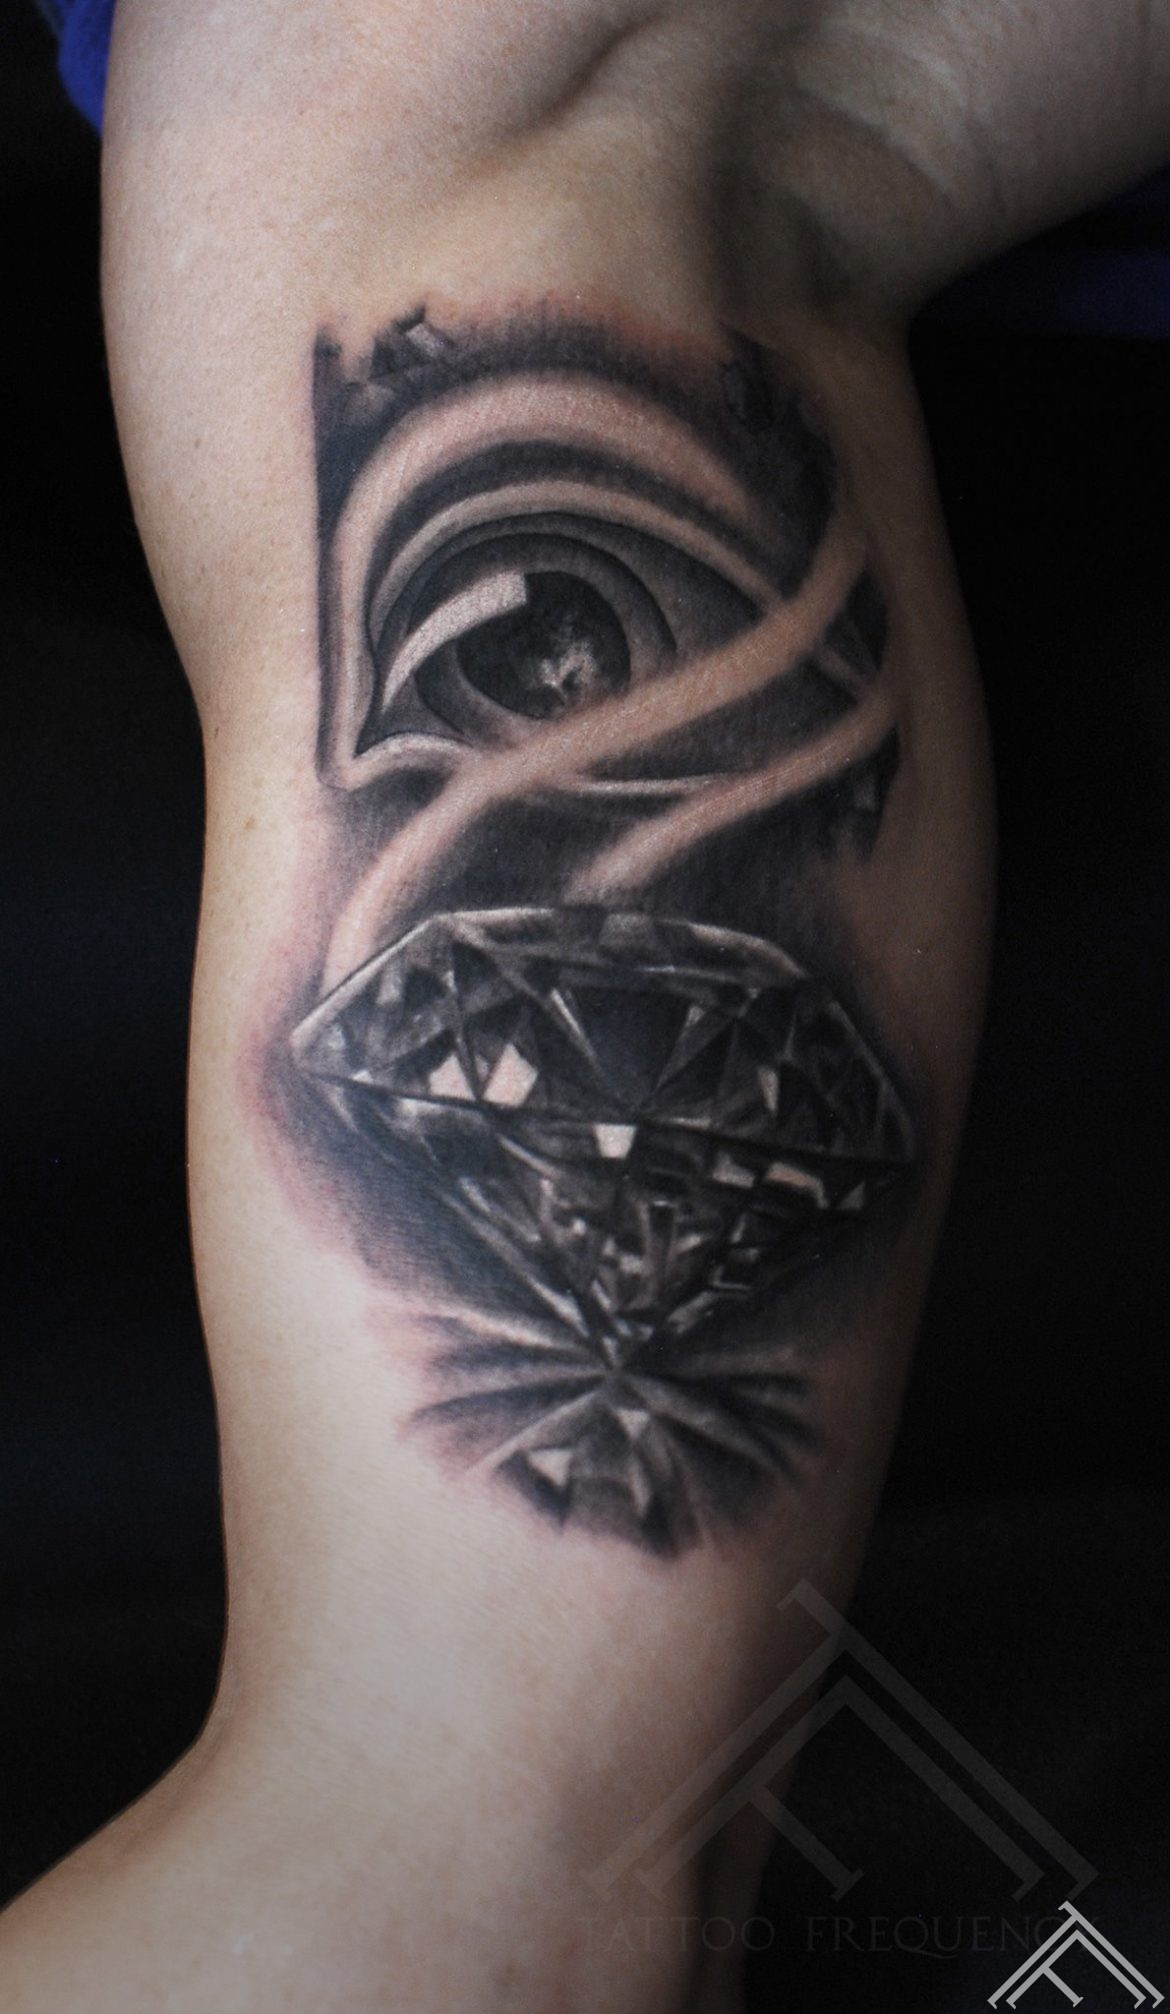 diamond-eye-dimants-acs-tattoo-tetovejums-tattoofrequency-studija-salons-riga-art-martinssilins-maksla